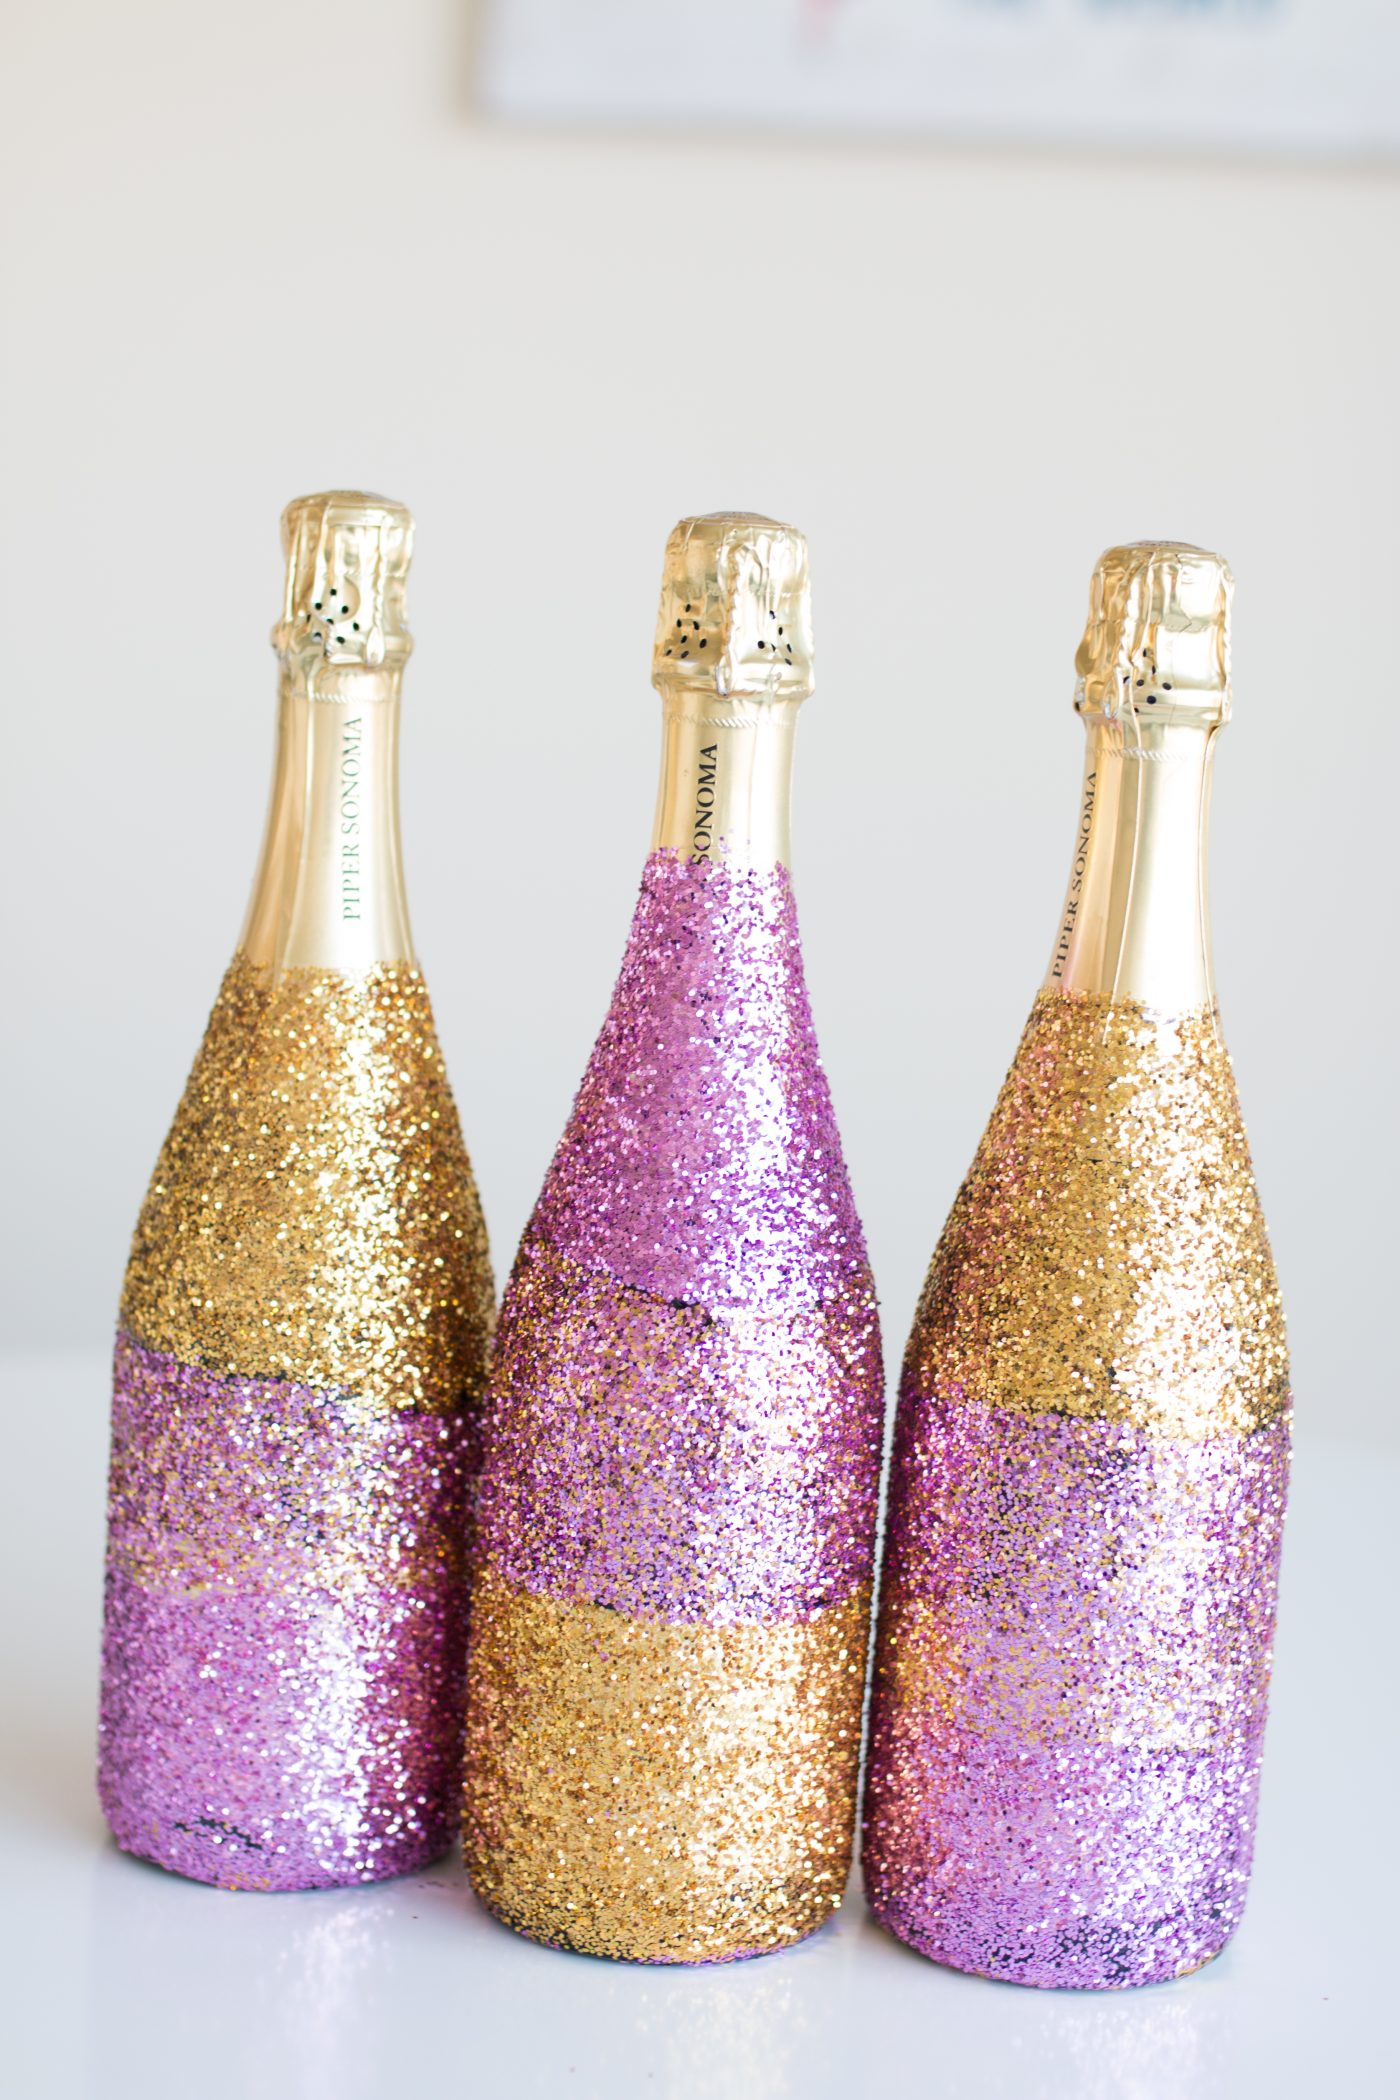 DIY Glitter Ombré Champagne Bottle